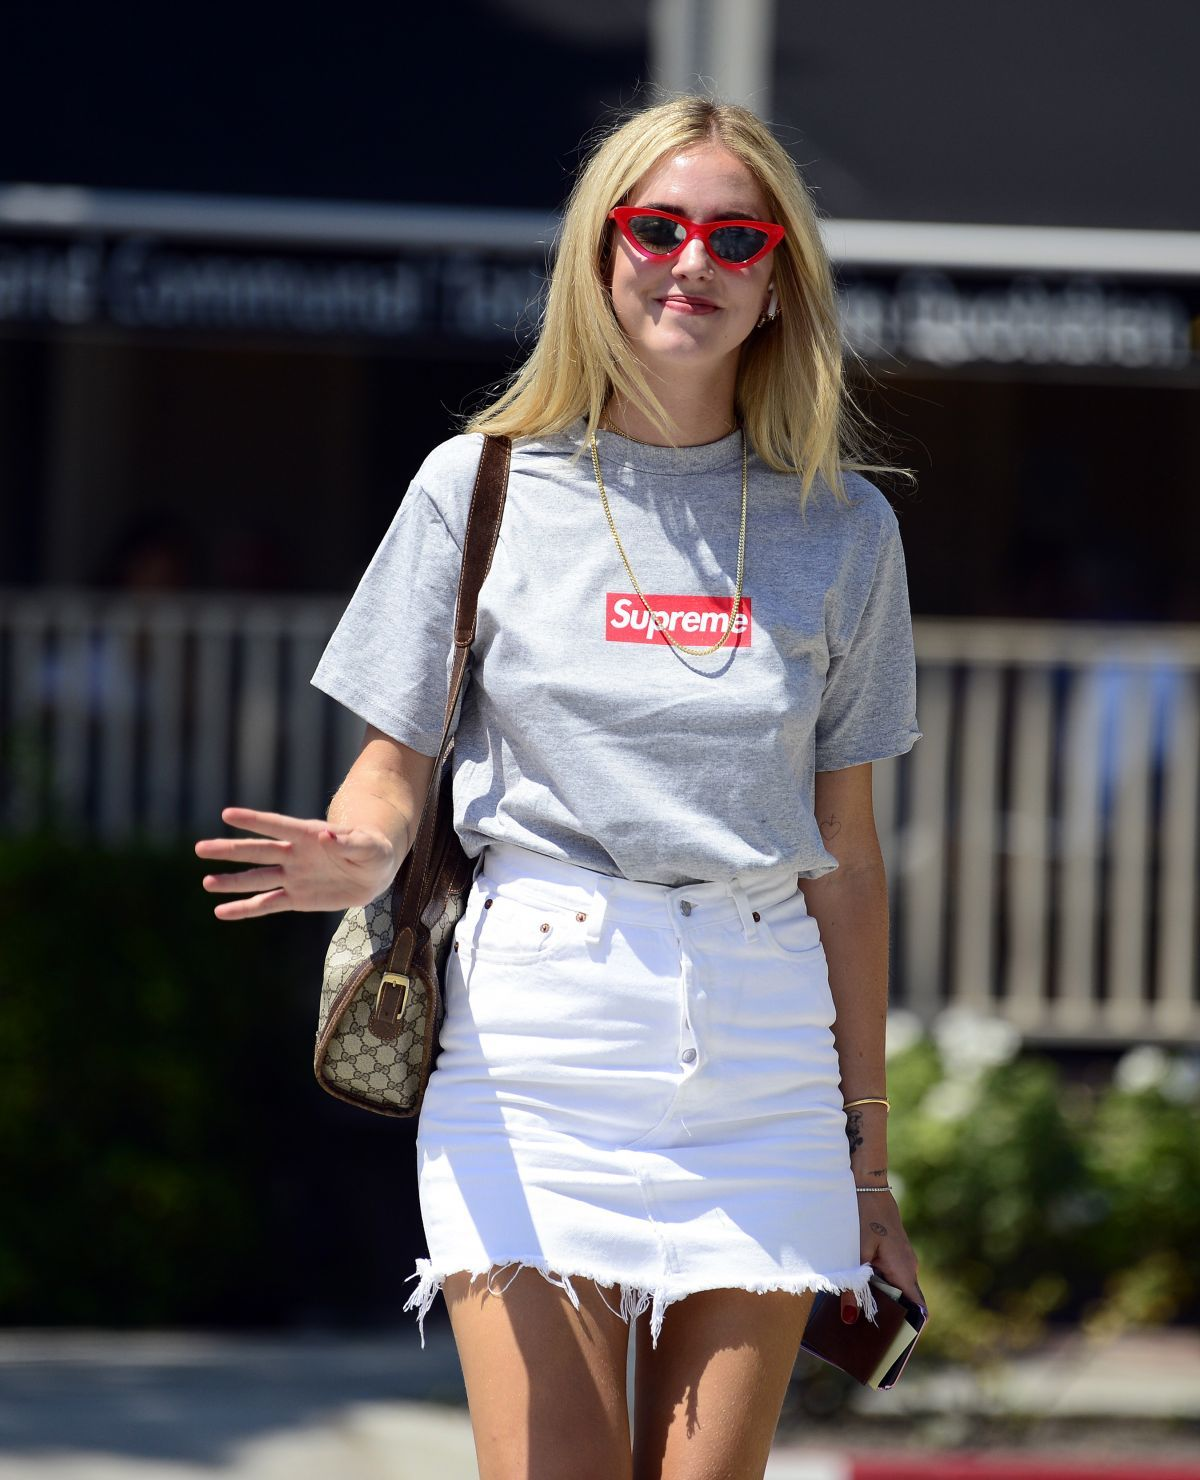 6f5bc46cc1 chiara-ferragni-out-and-about-in-los-angeles-08- — Postimage.org ...